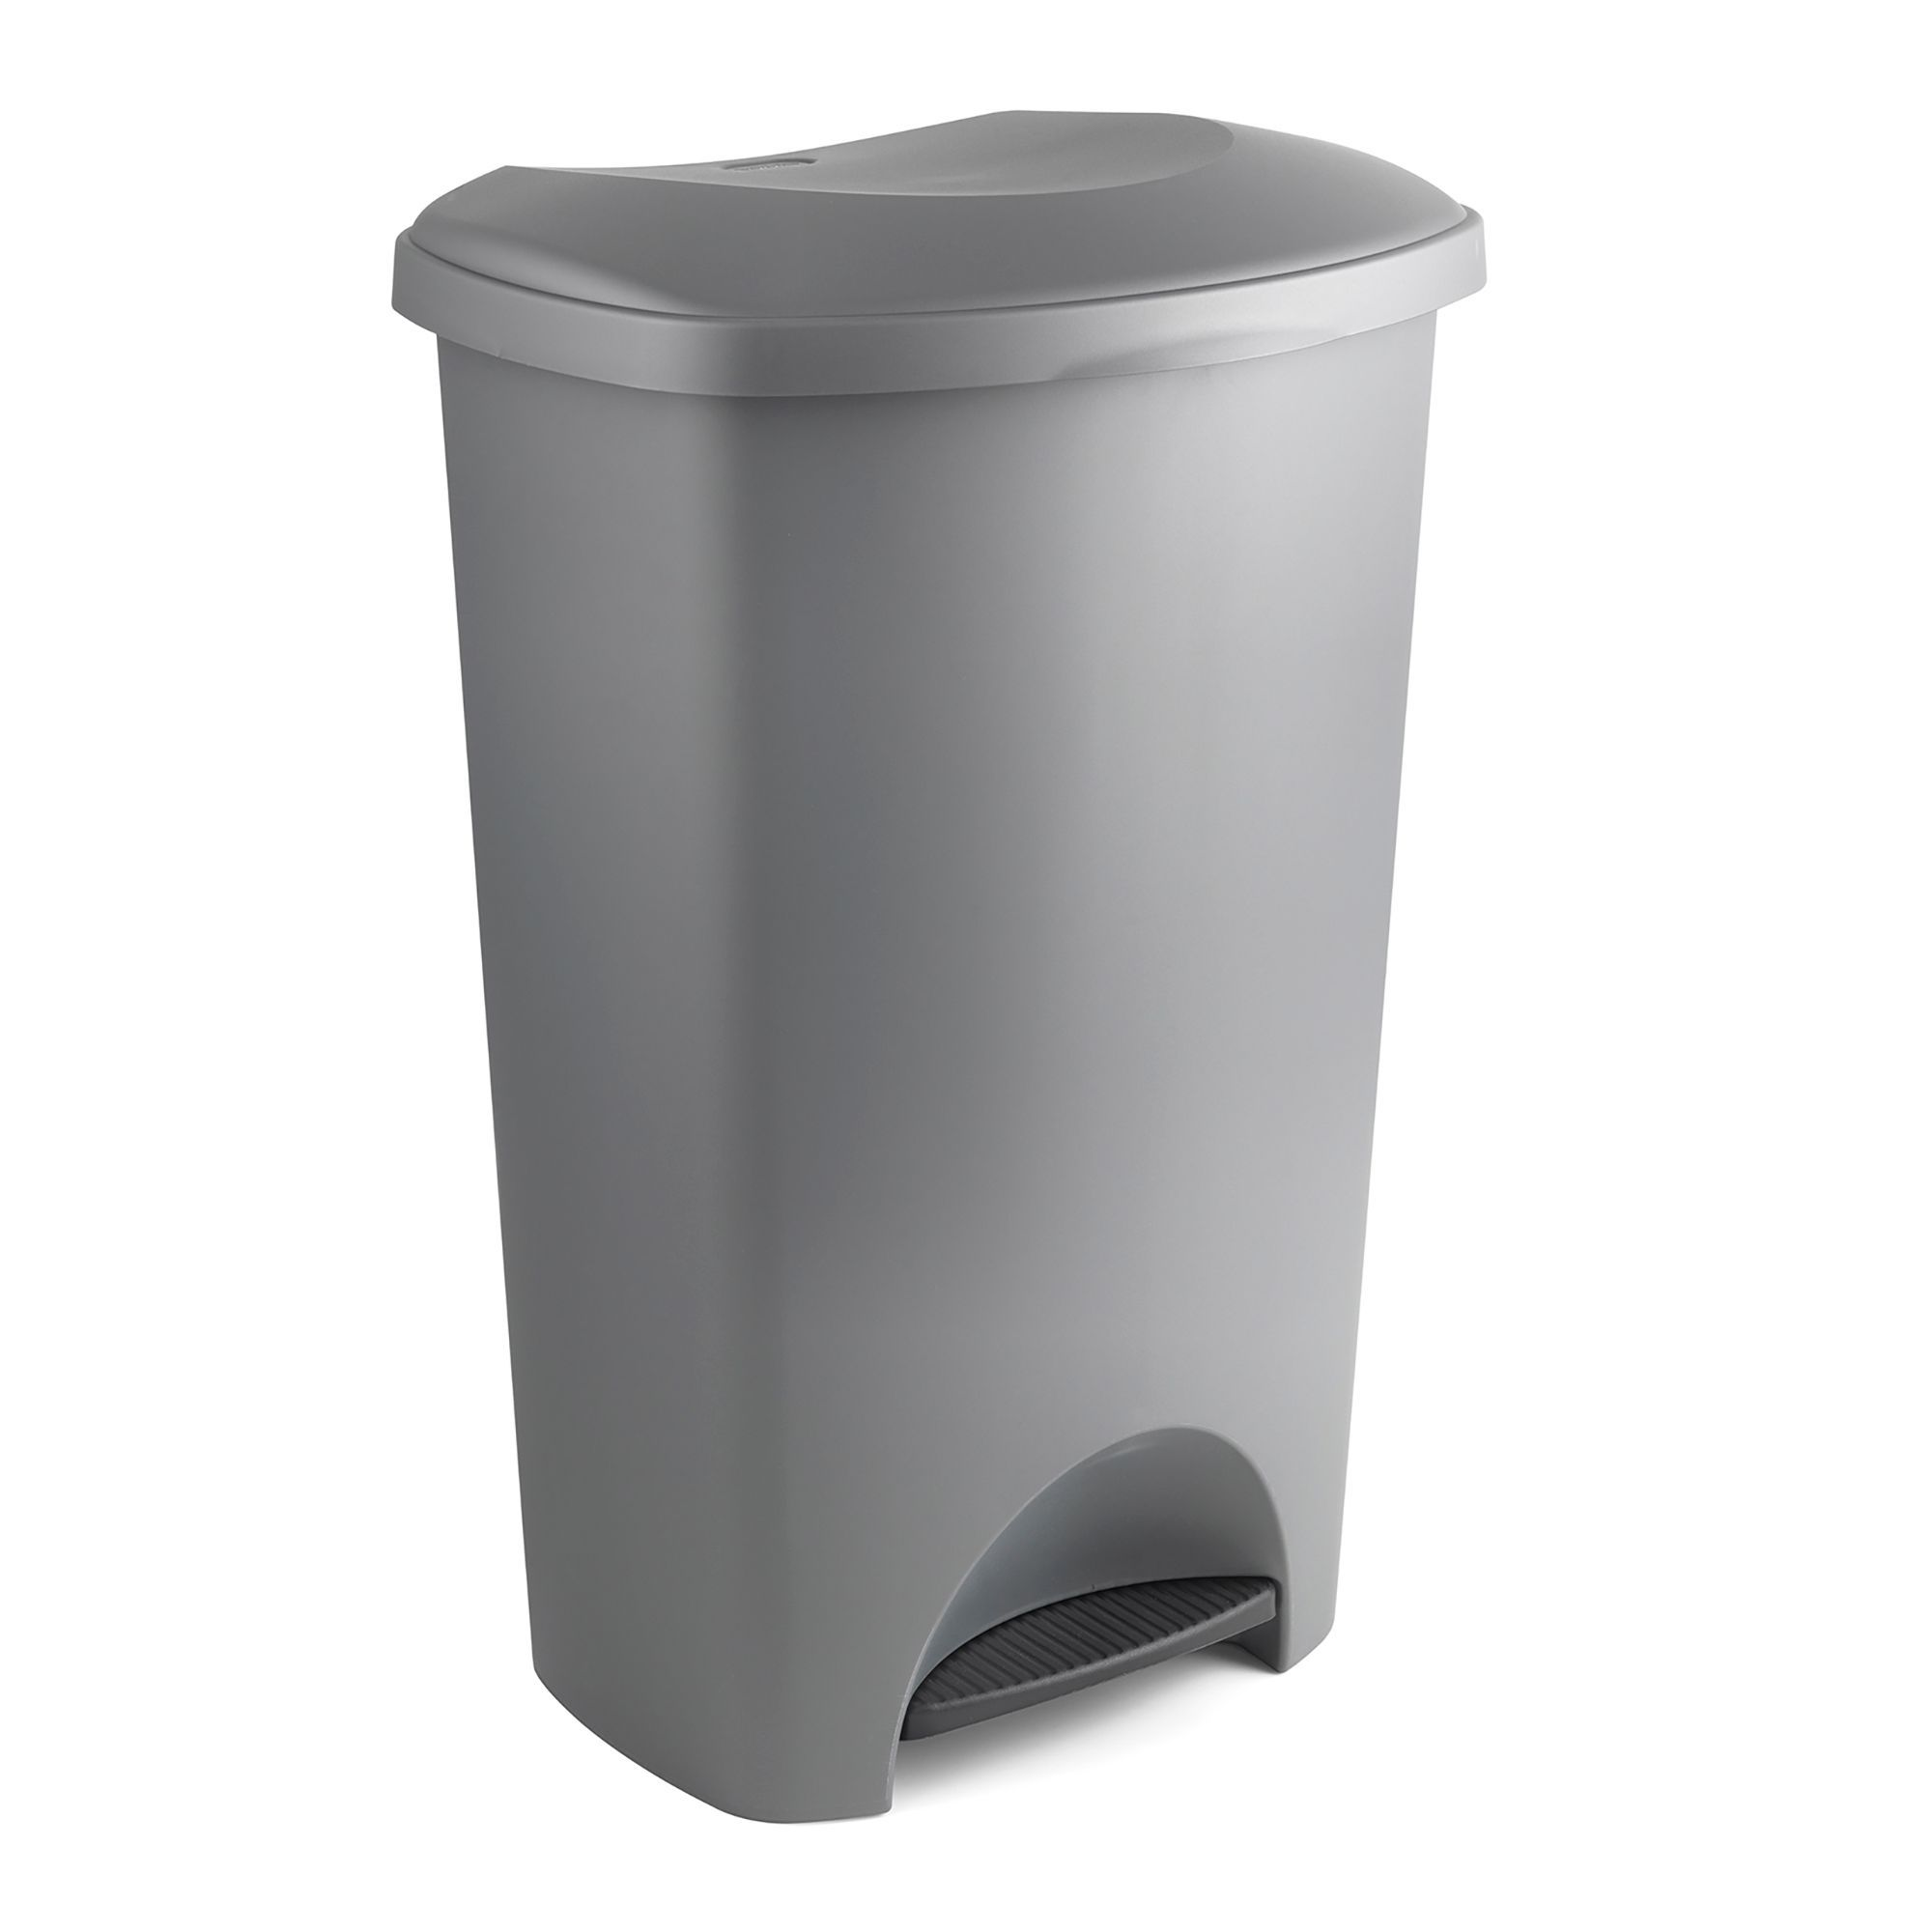 Addis Slim Matt Grey Plastic Rectangular Pedal Bin, 50l